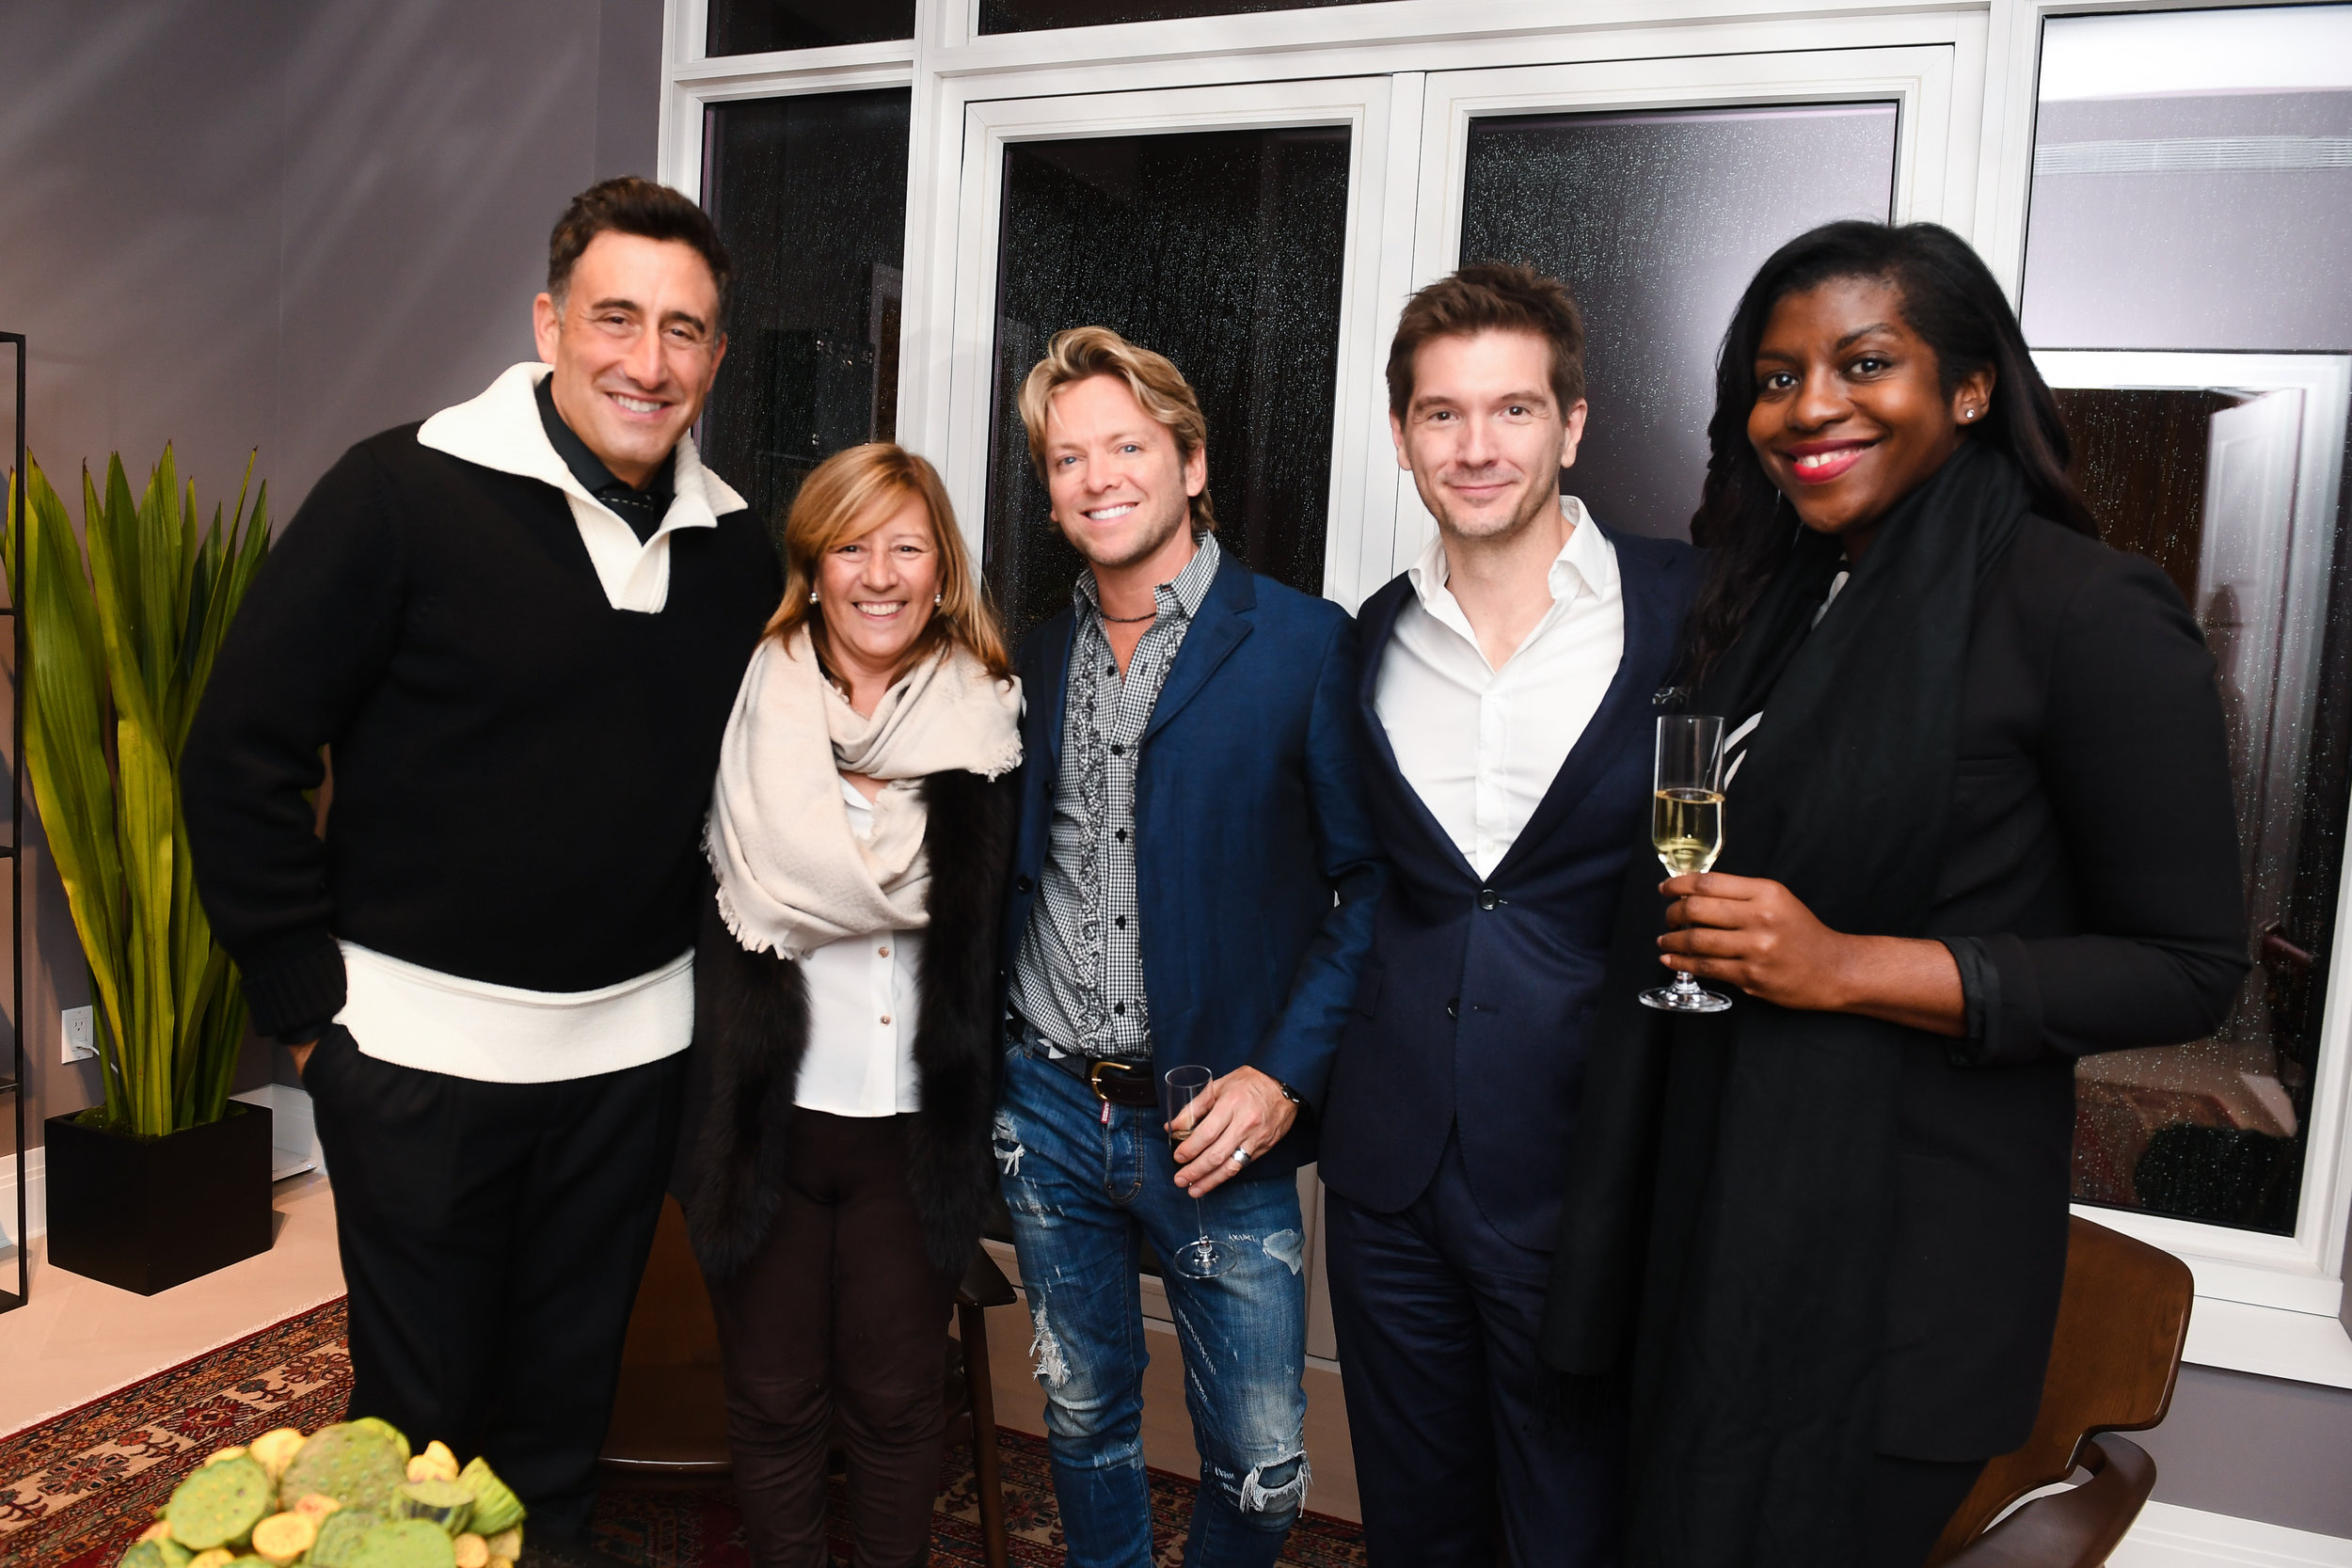 Scott Stewart and Maria Pashby of The Corcoran Group, author Bruce Littlefield, and David Ayers and Nicole Christie of The Corcoran Group at the Louis Vuitton partnership at  30 Park Place Four Seasons Private Residences